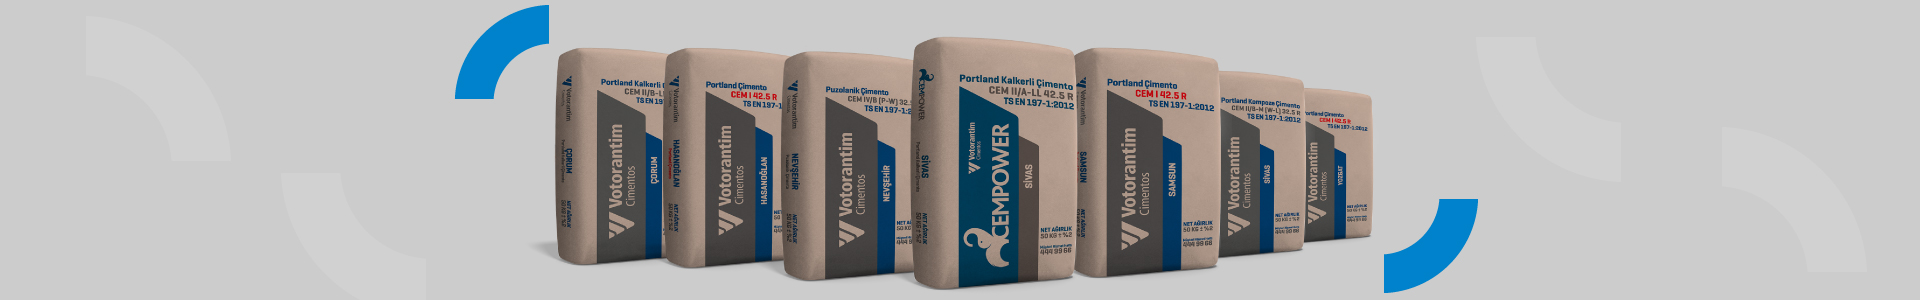 Votorantim Cimentos offers different types of cement for different uses in construction